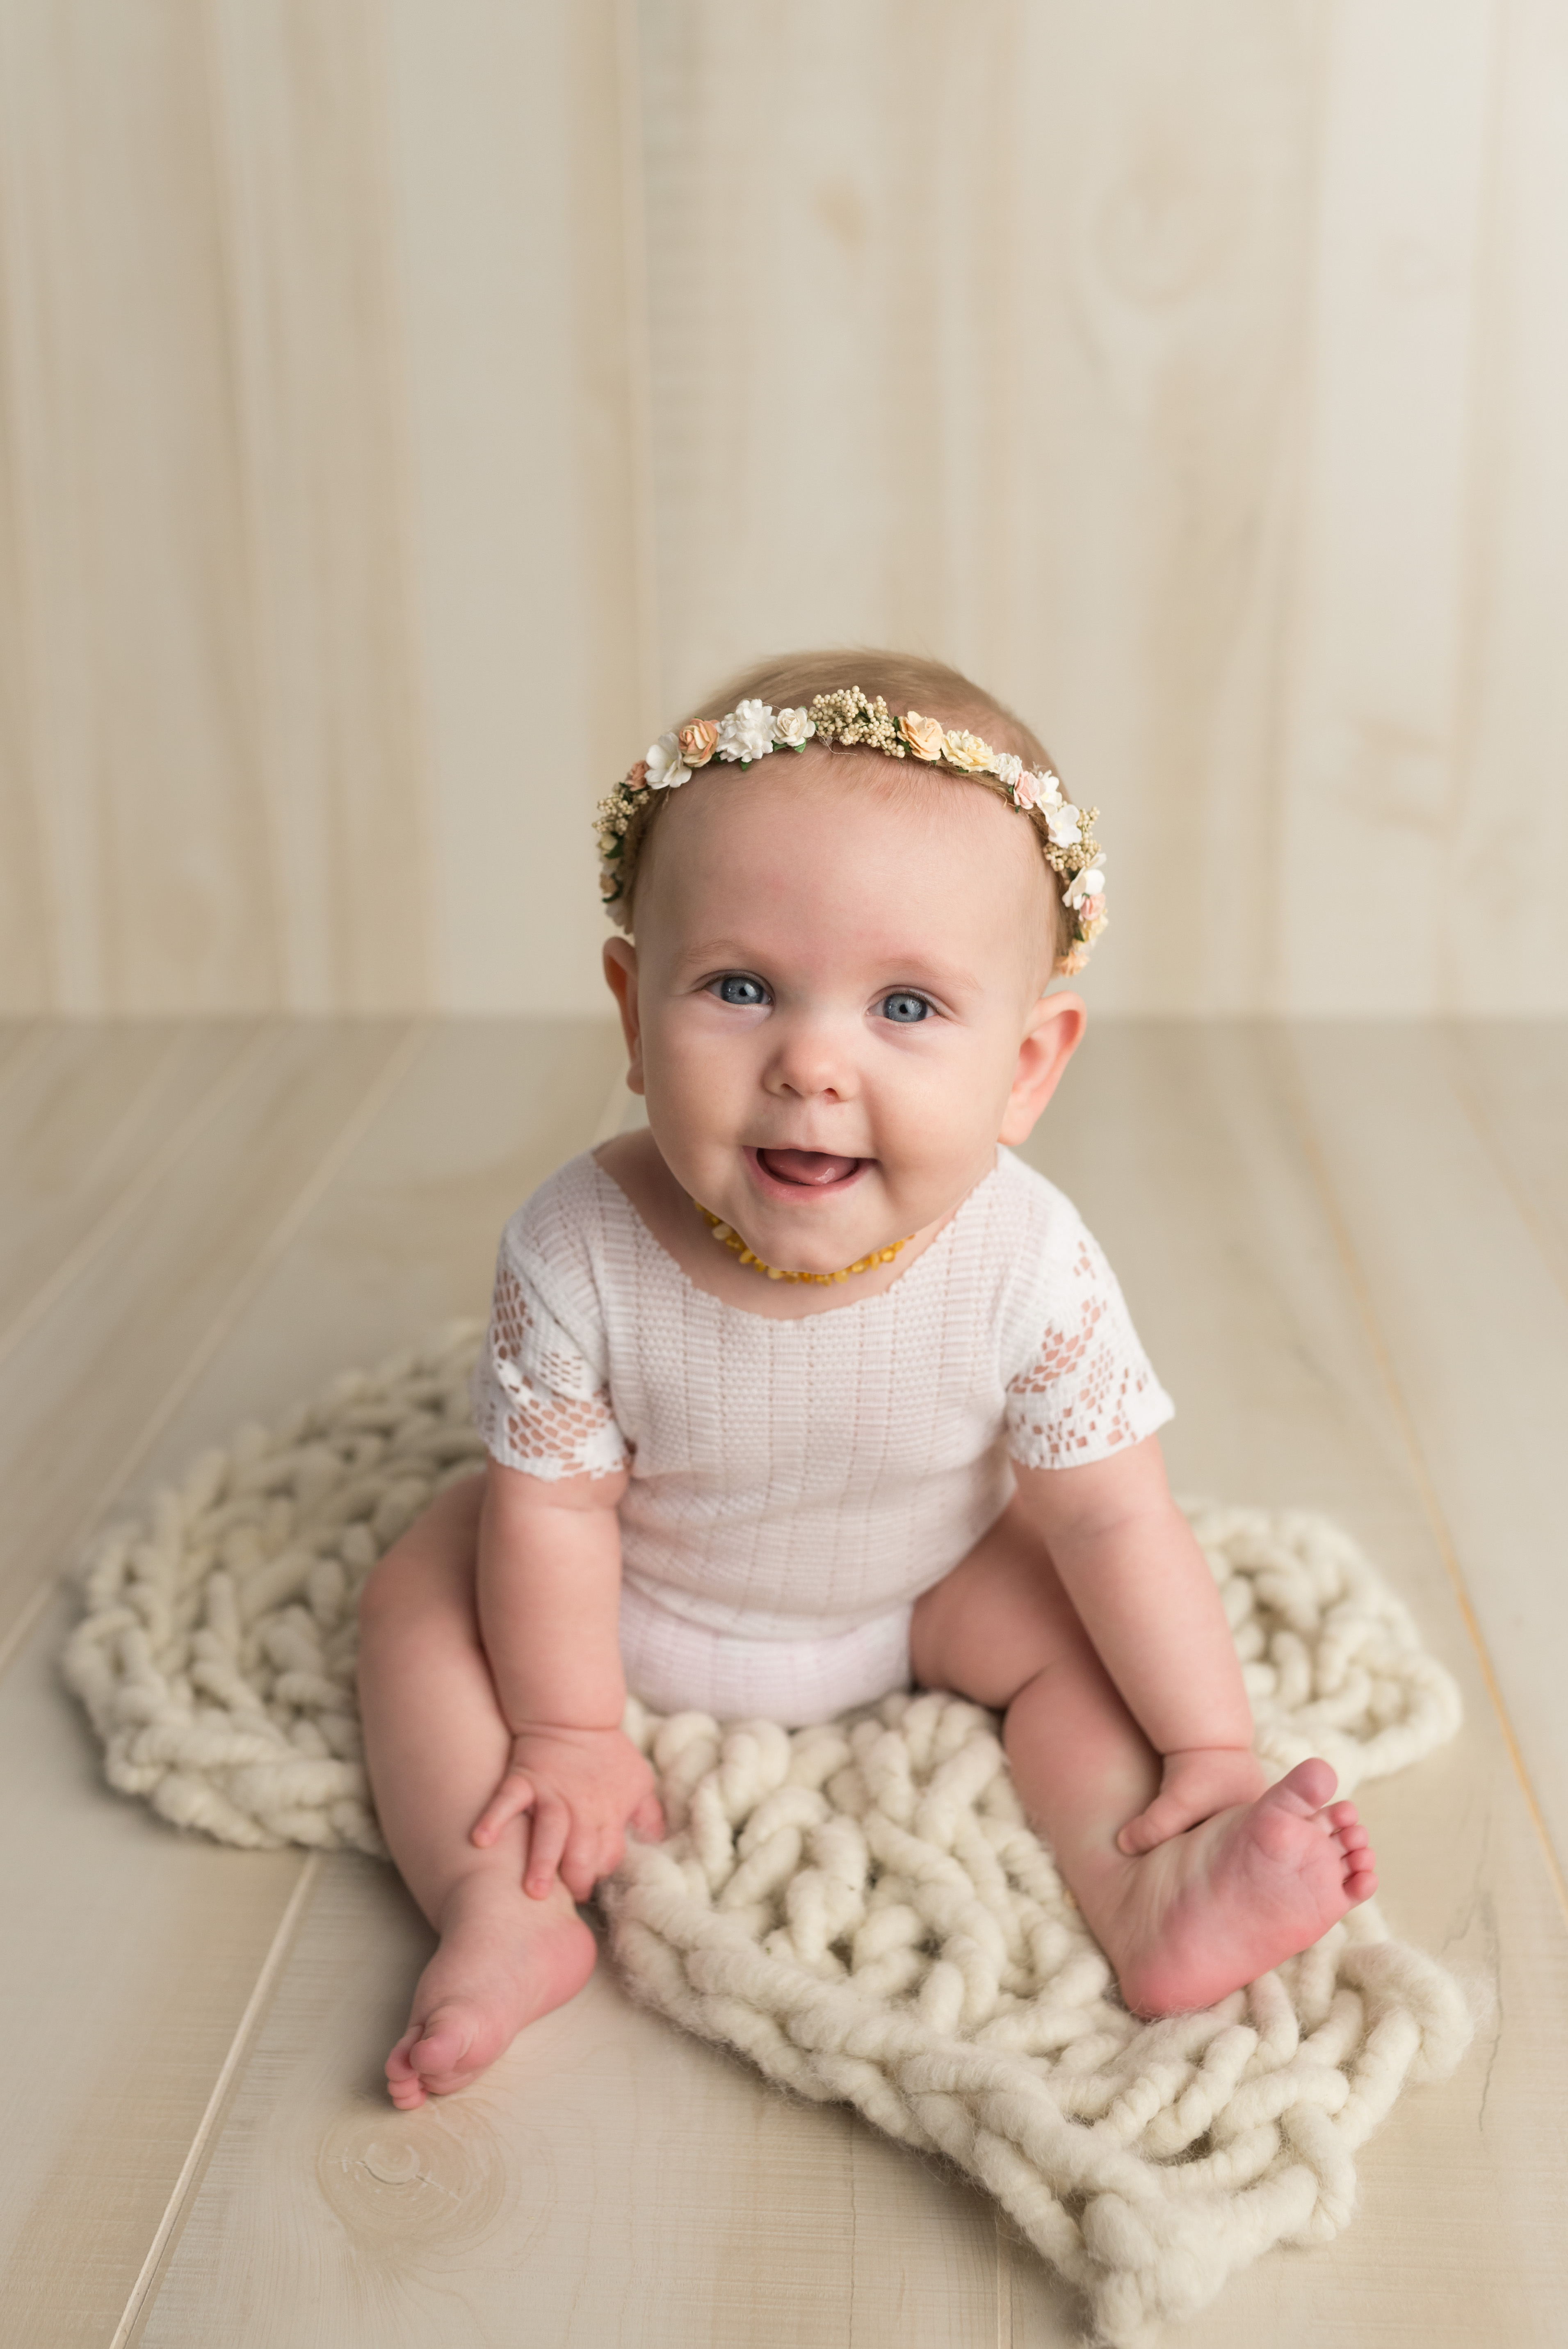 cutest 6 month old baby in Cedar Rapids during her photography session